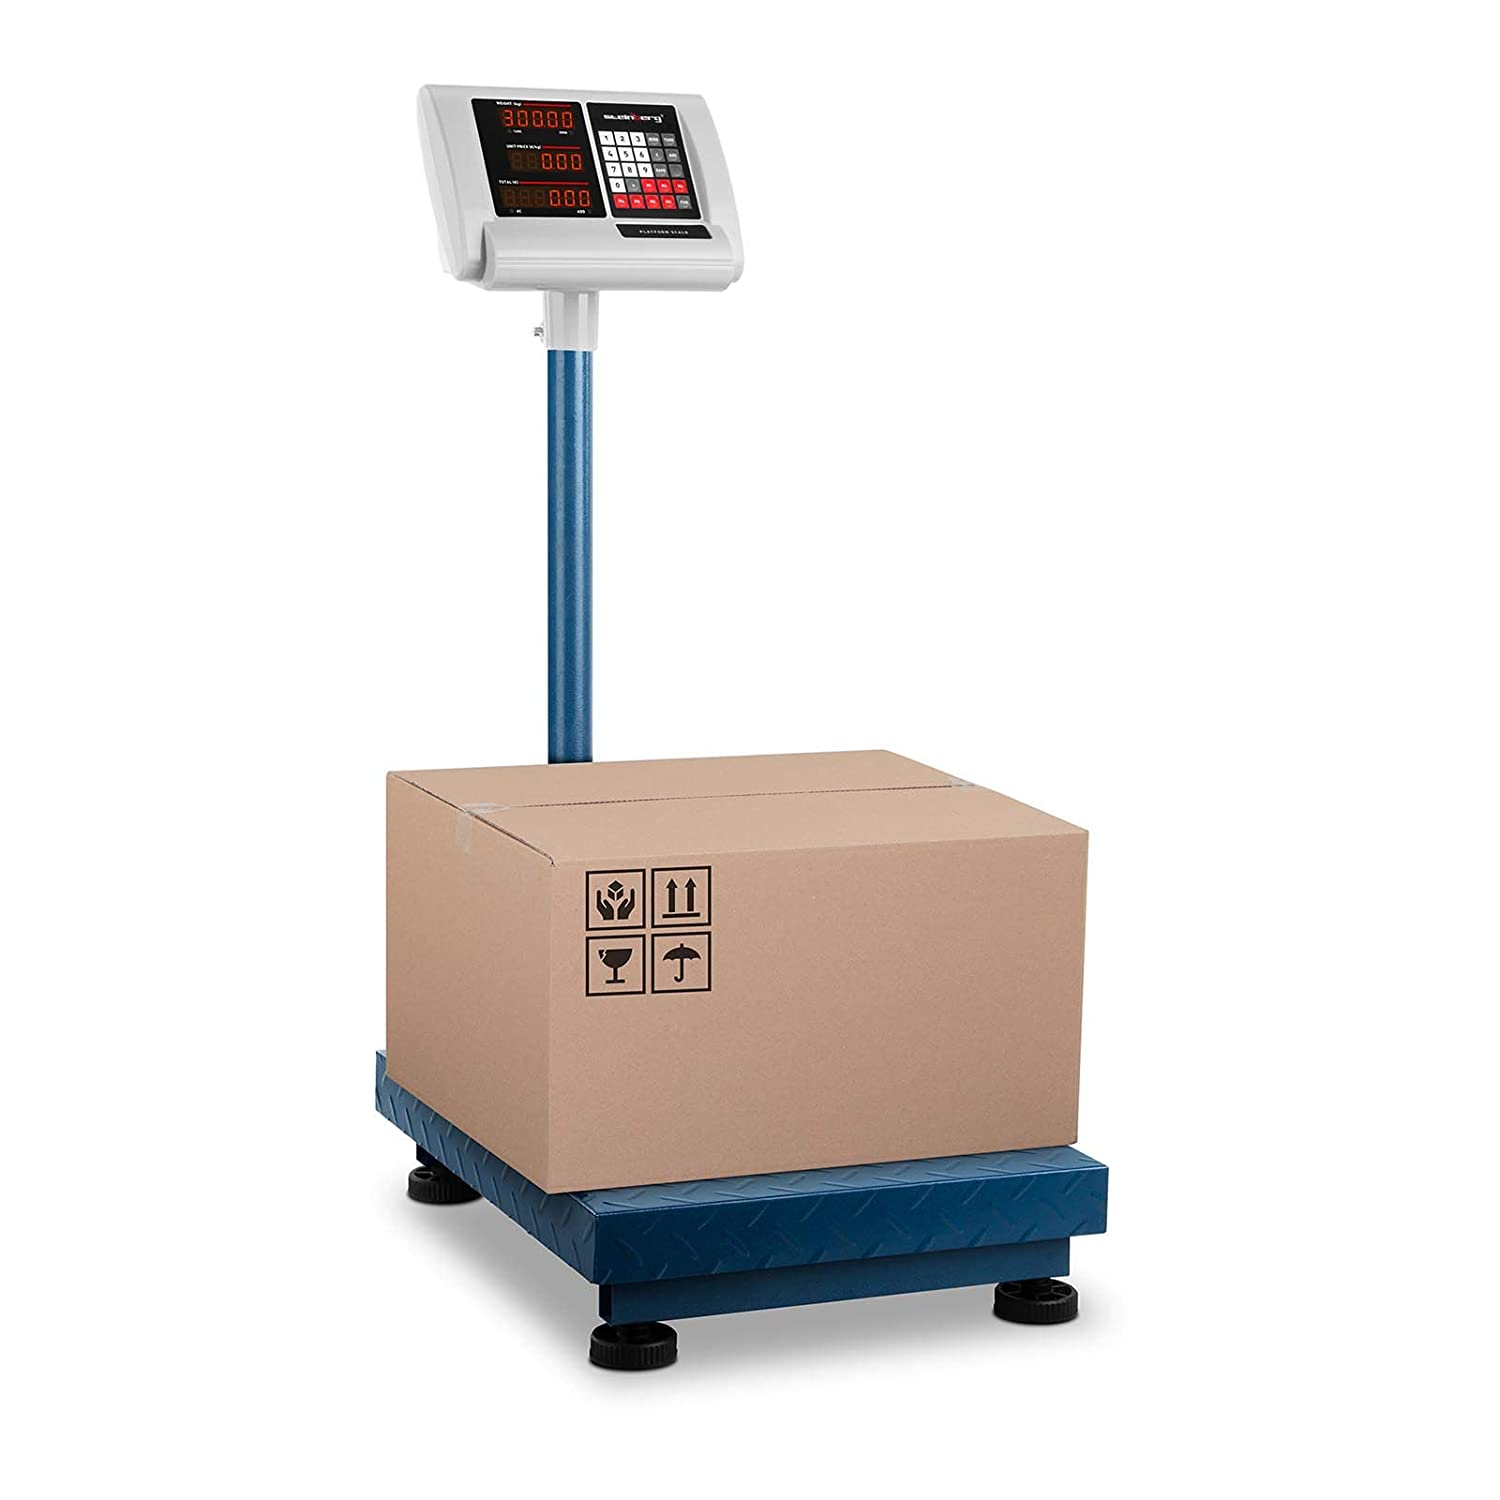 300 kg // 50 g, 40 x 50 cm, 10 hours battery, Folding display, Adjustable background lighting Steinberg Systems Platform Scale Parcel Industrial SBS-PF-300//50C